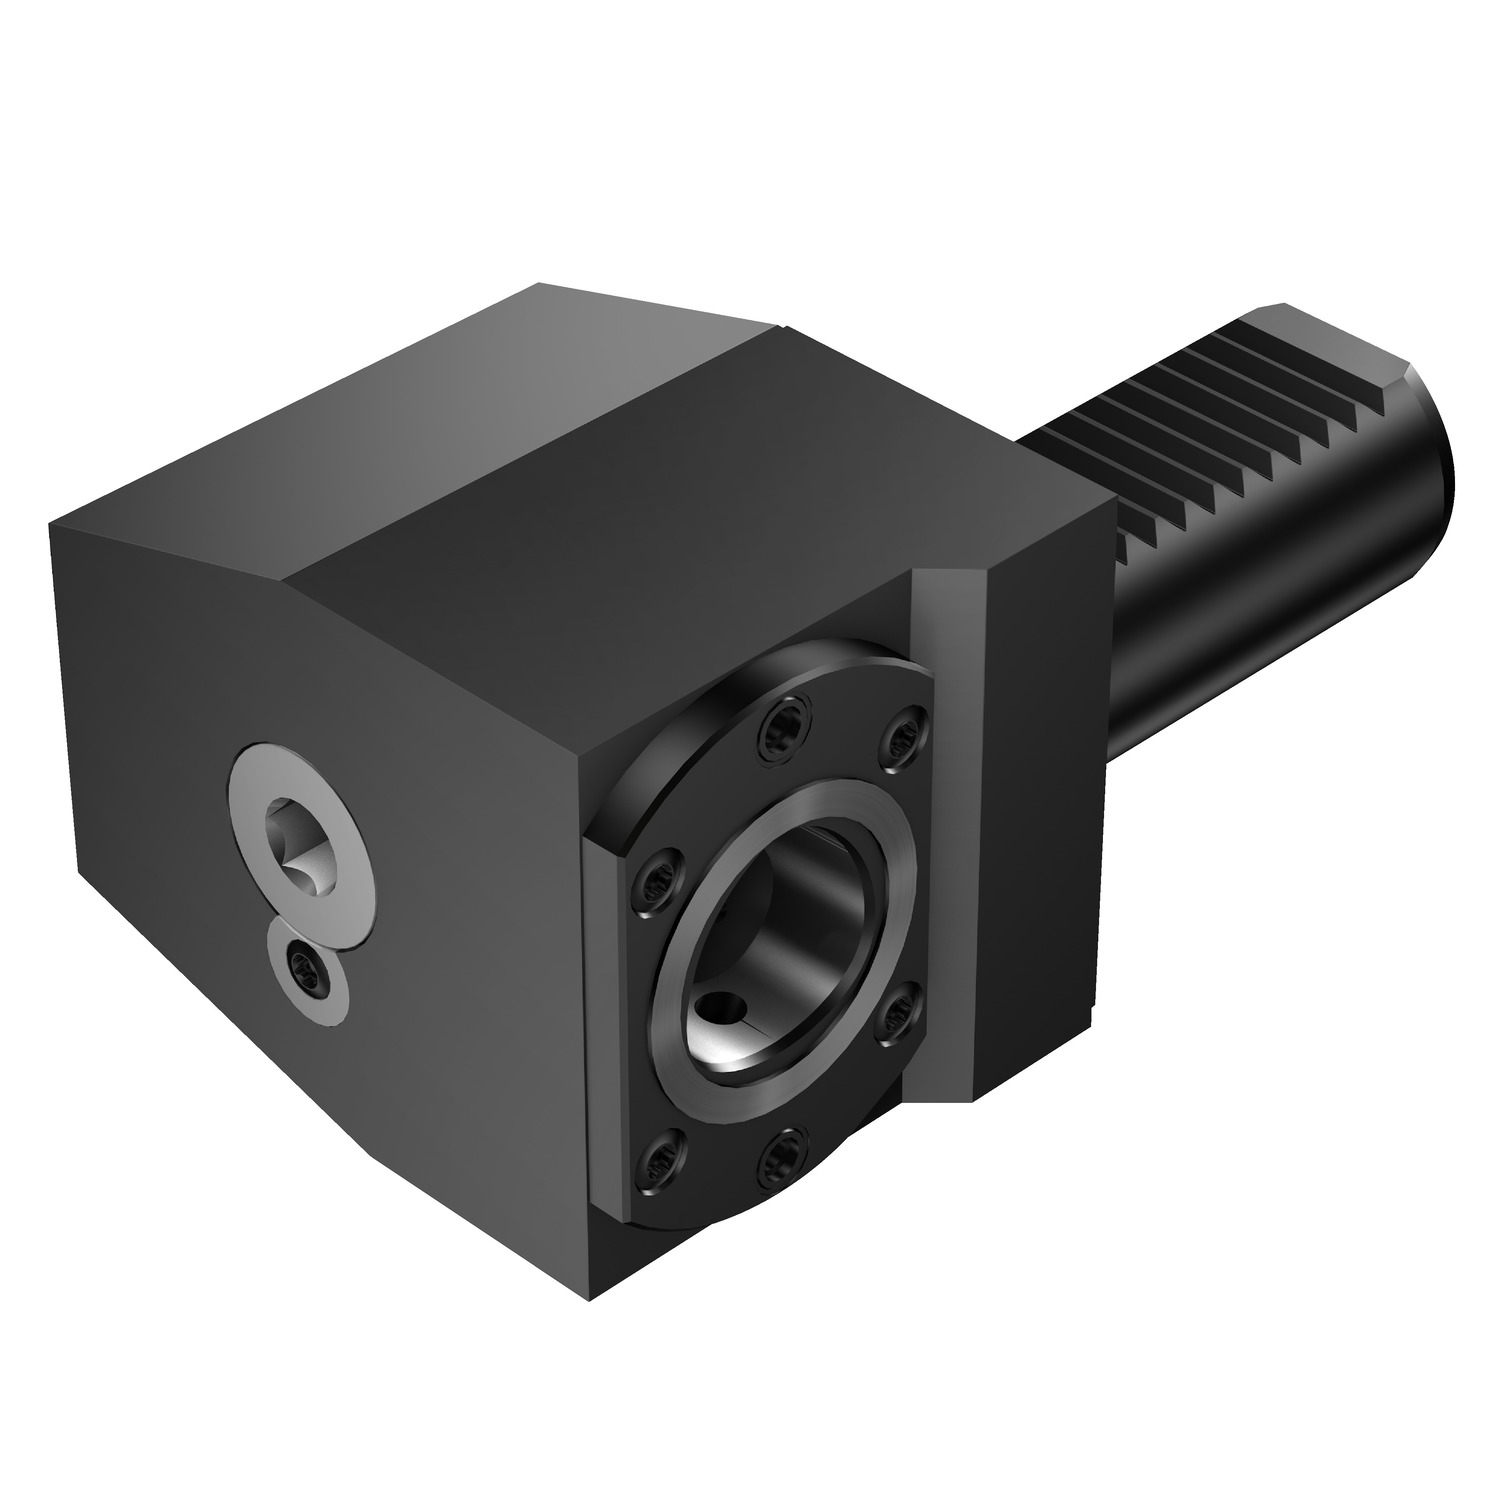 C3-RC2030-41030M - Holders, Adapters & Heads